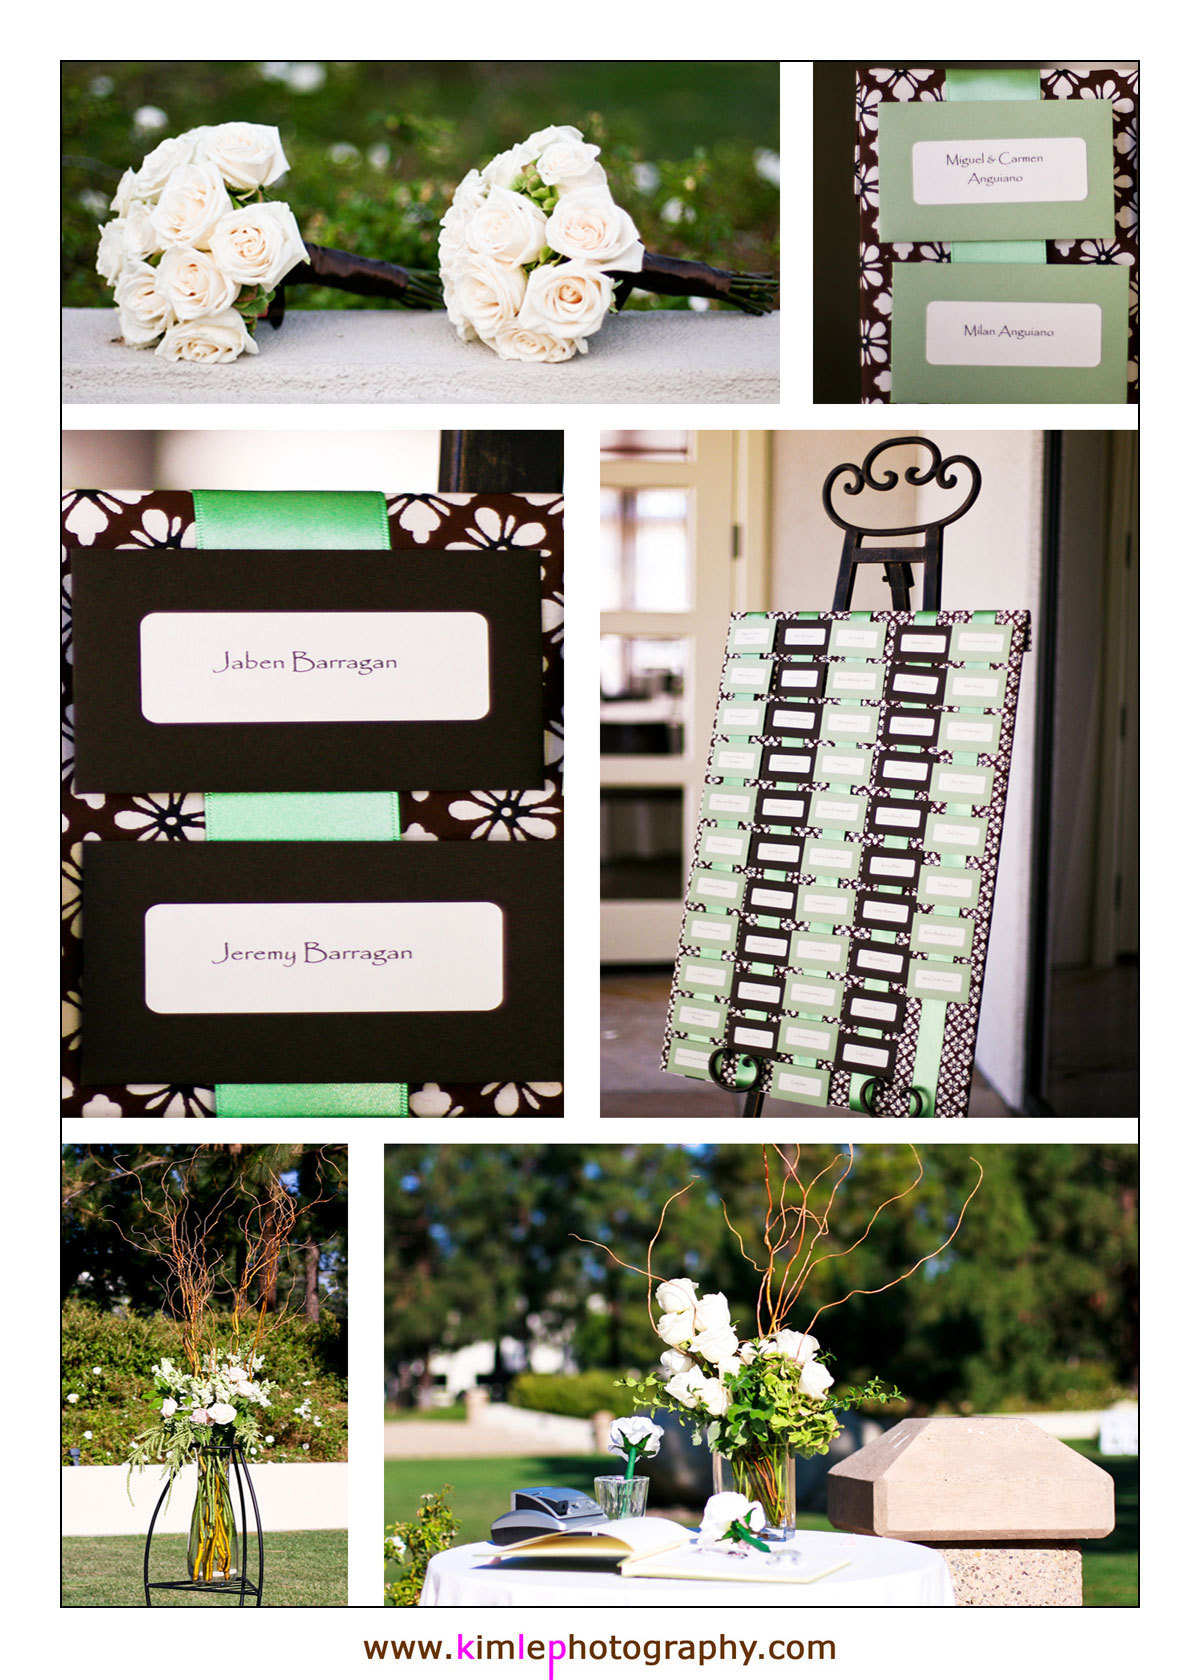 Flowers & Decor, Flowers, Details, Kim le photography